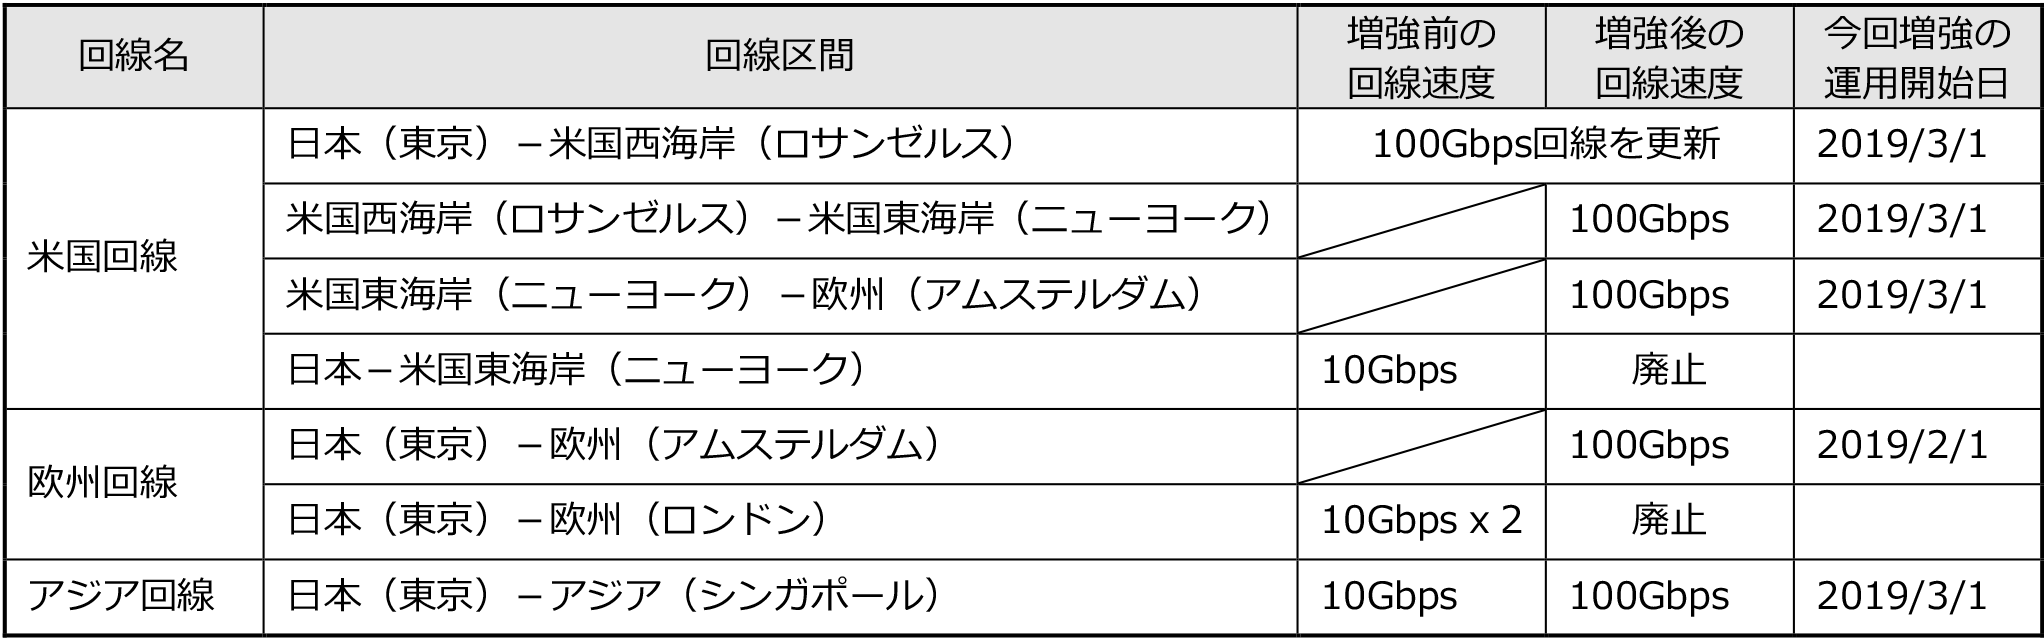 nii_newsrelease_20190301_table1.png